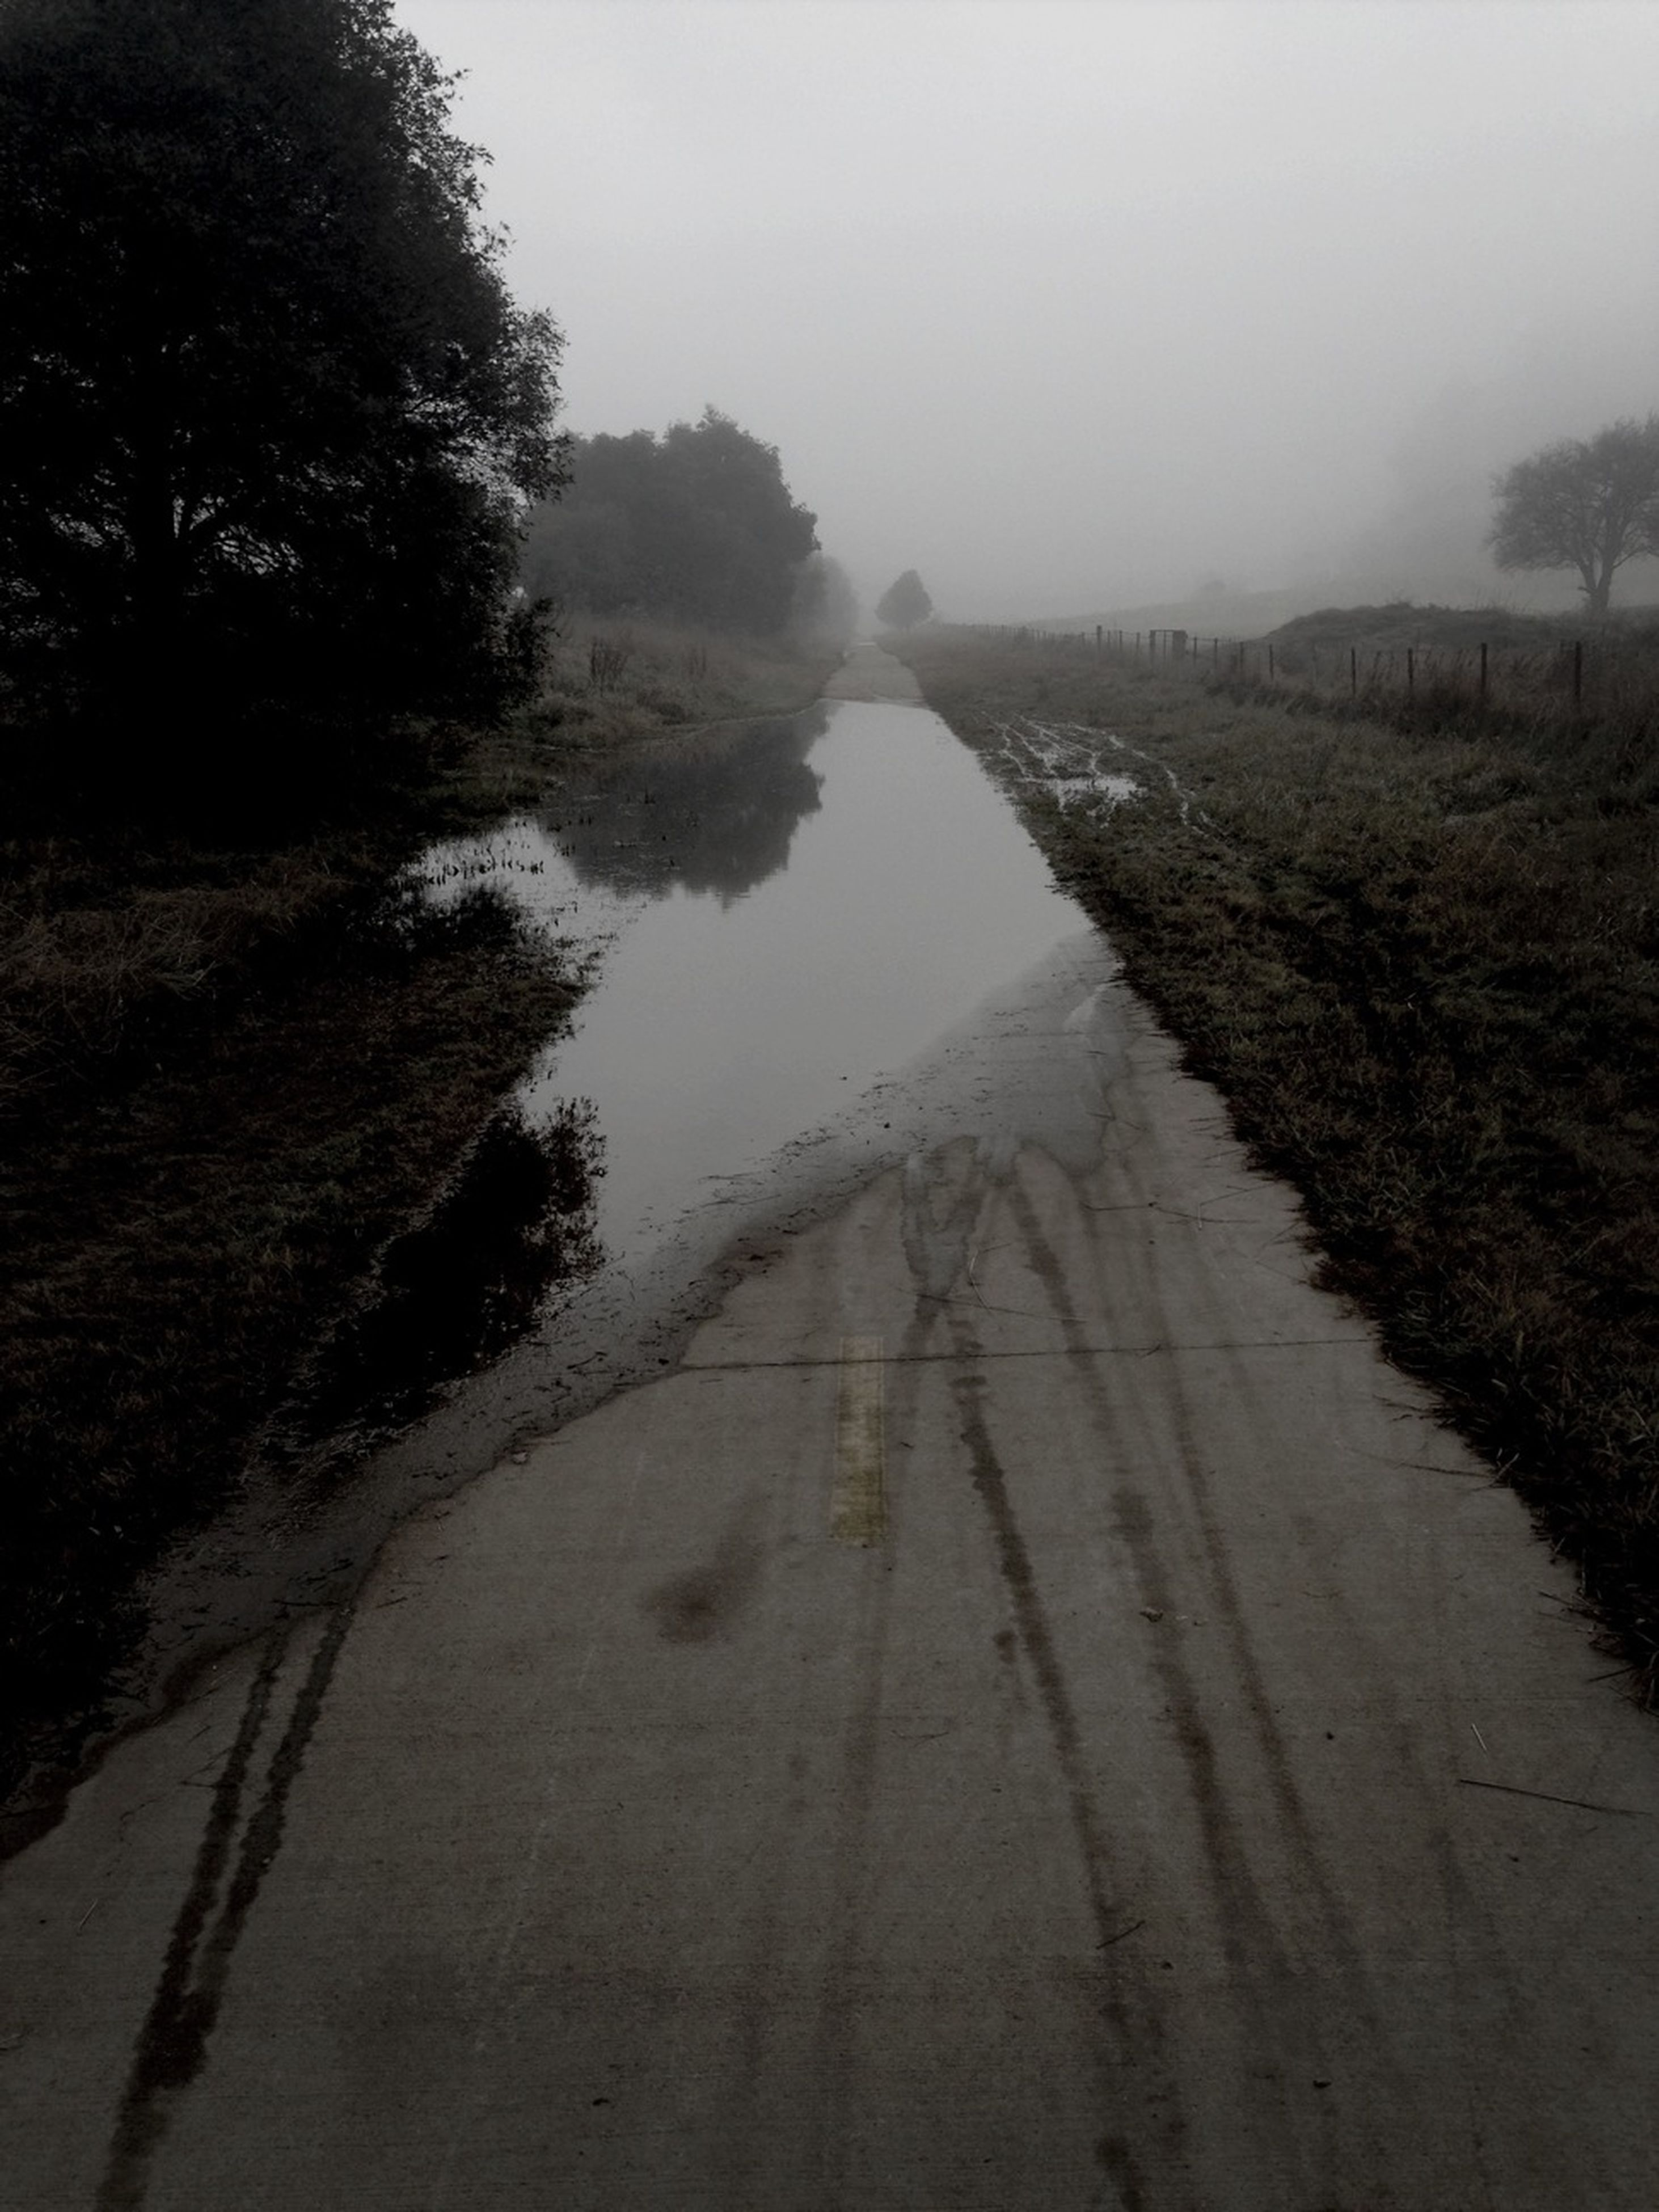 the way forward, transportation, diminishing perspective, vanishing point, road, tree, sky, fog, tranquility, weather, tranquil scene, nature, foggy, landscape, water, street, outdoors, no people, field, long